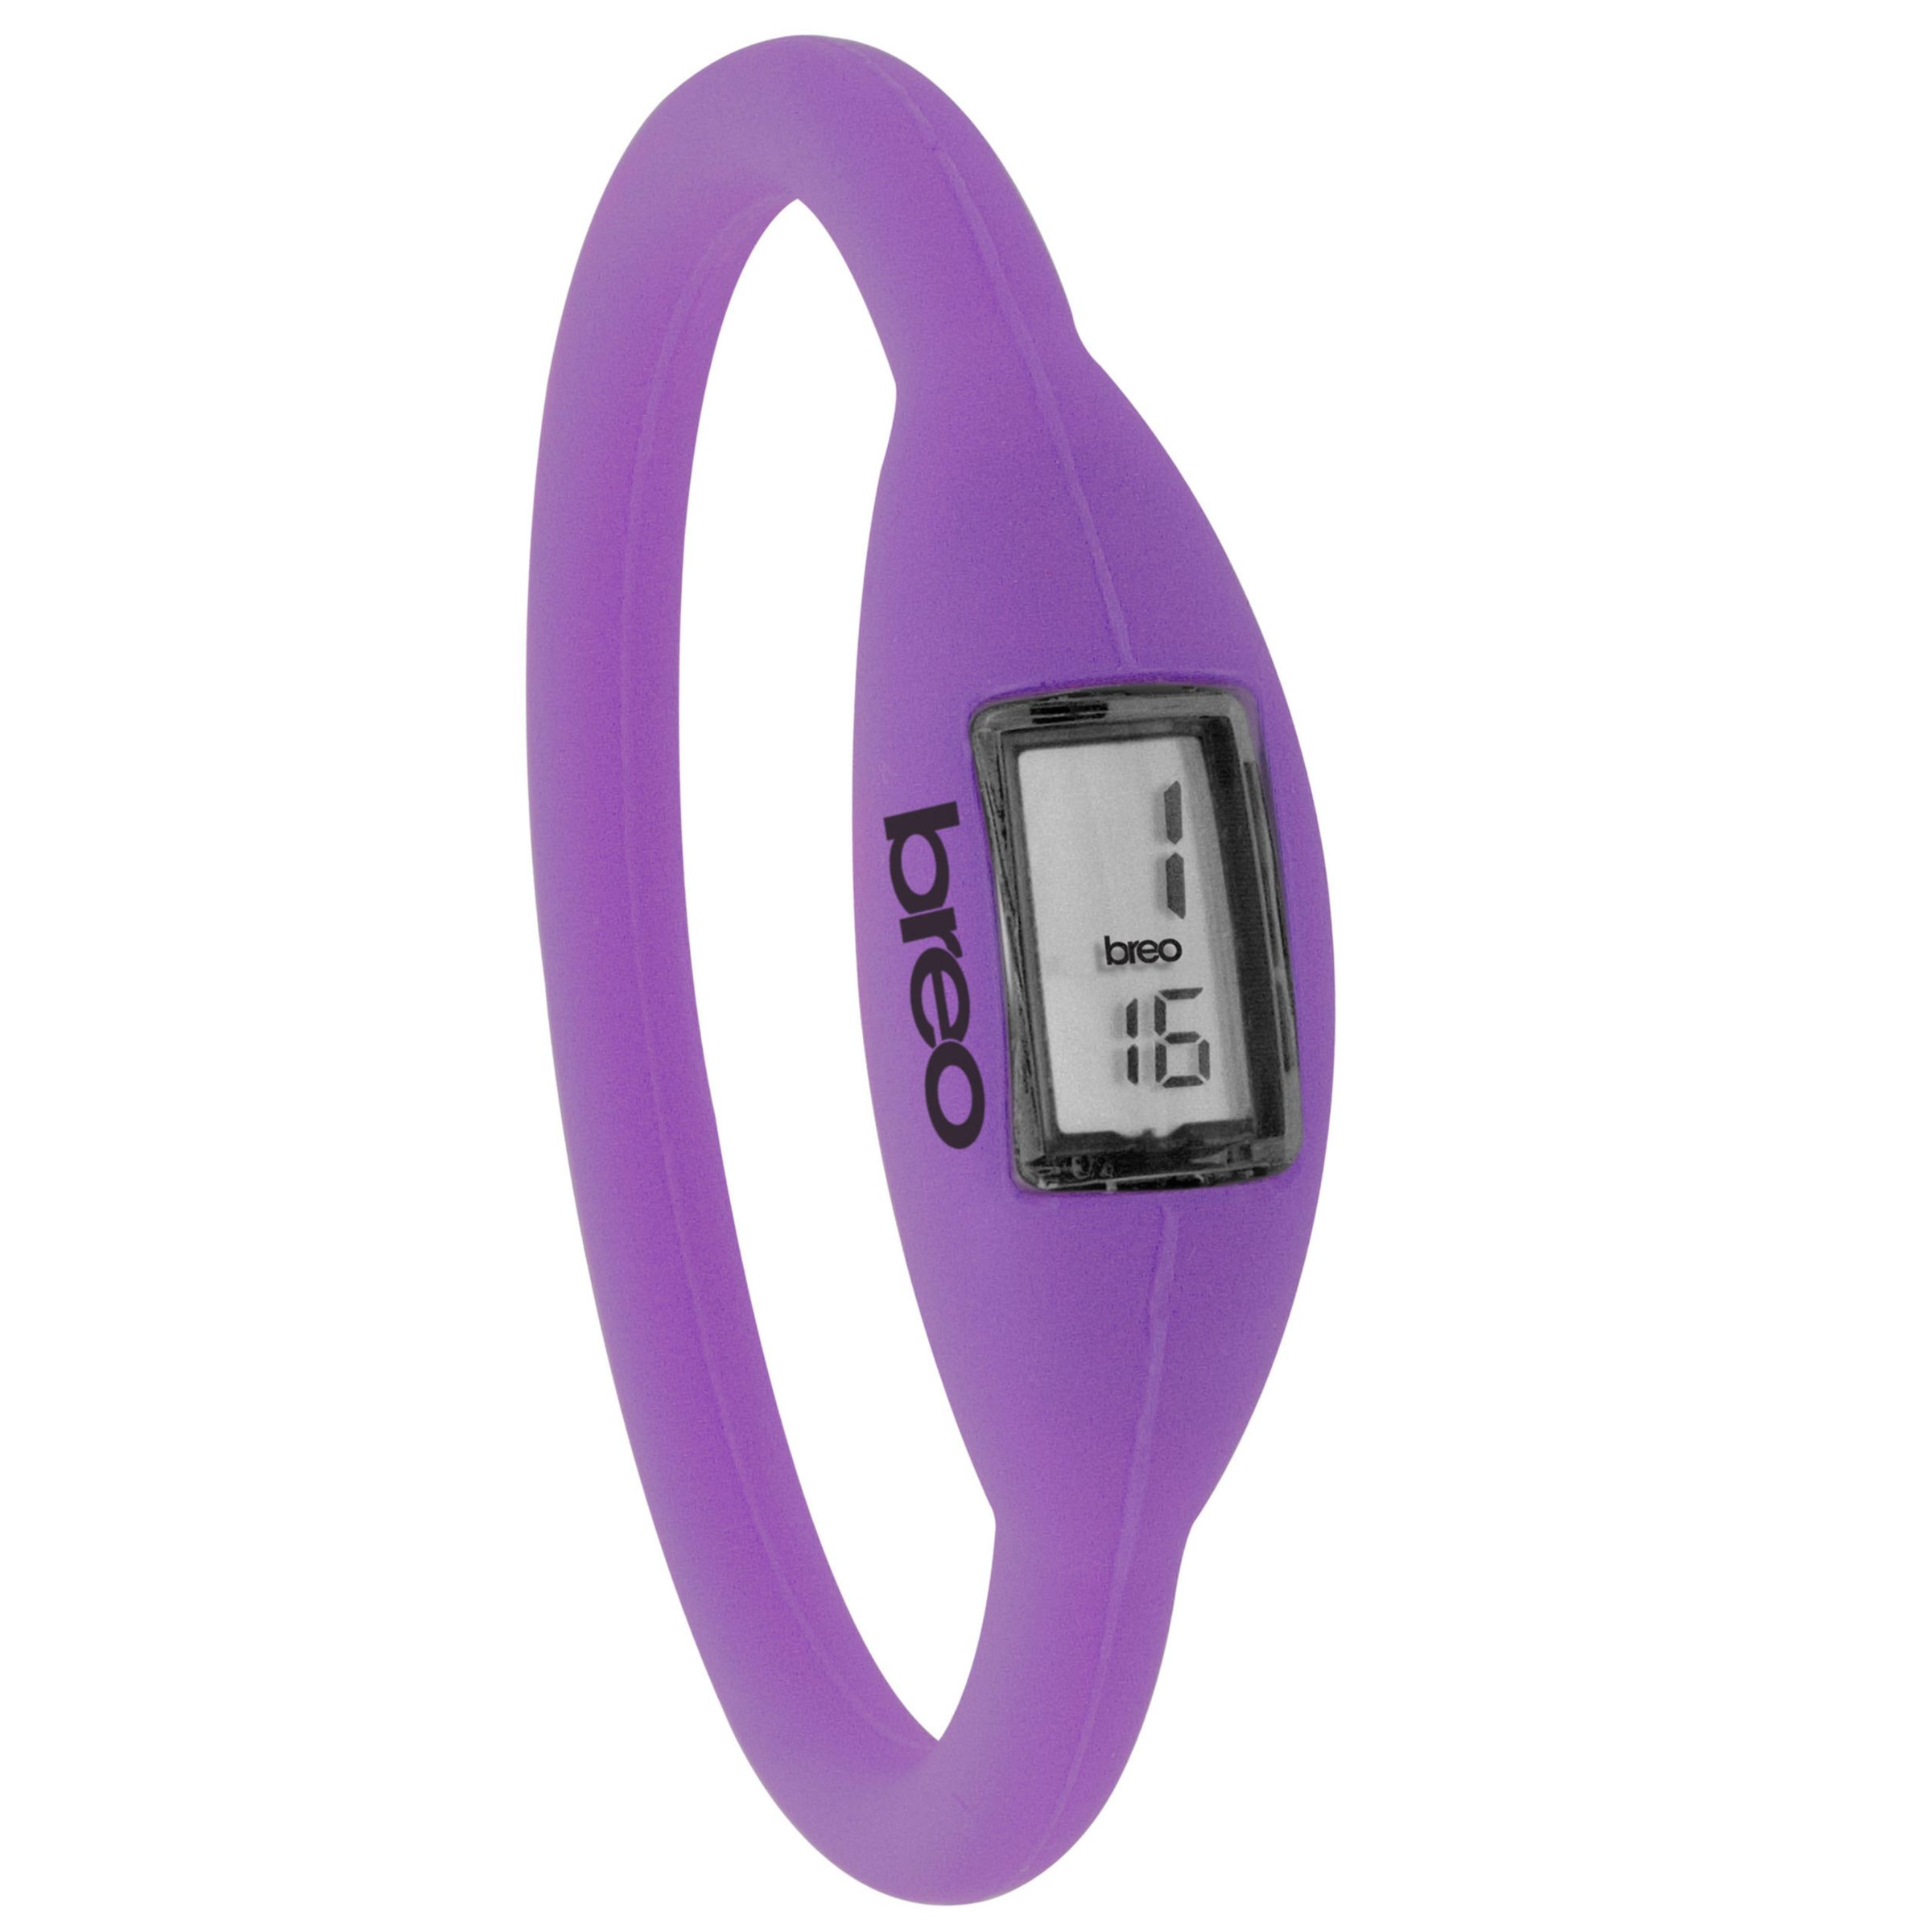 Breo Roam B-TI-RO4 Digital Sports Watch, Purple